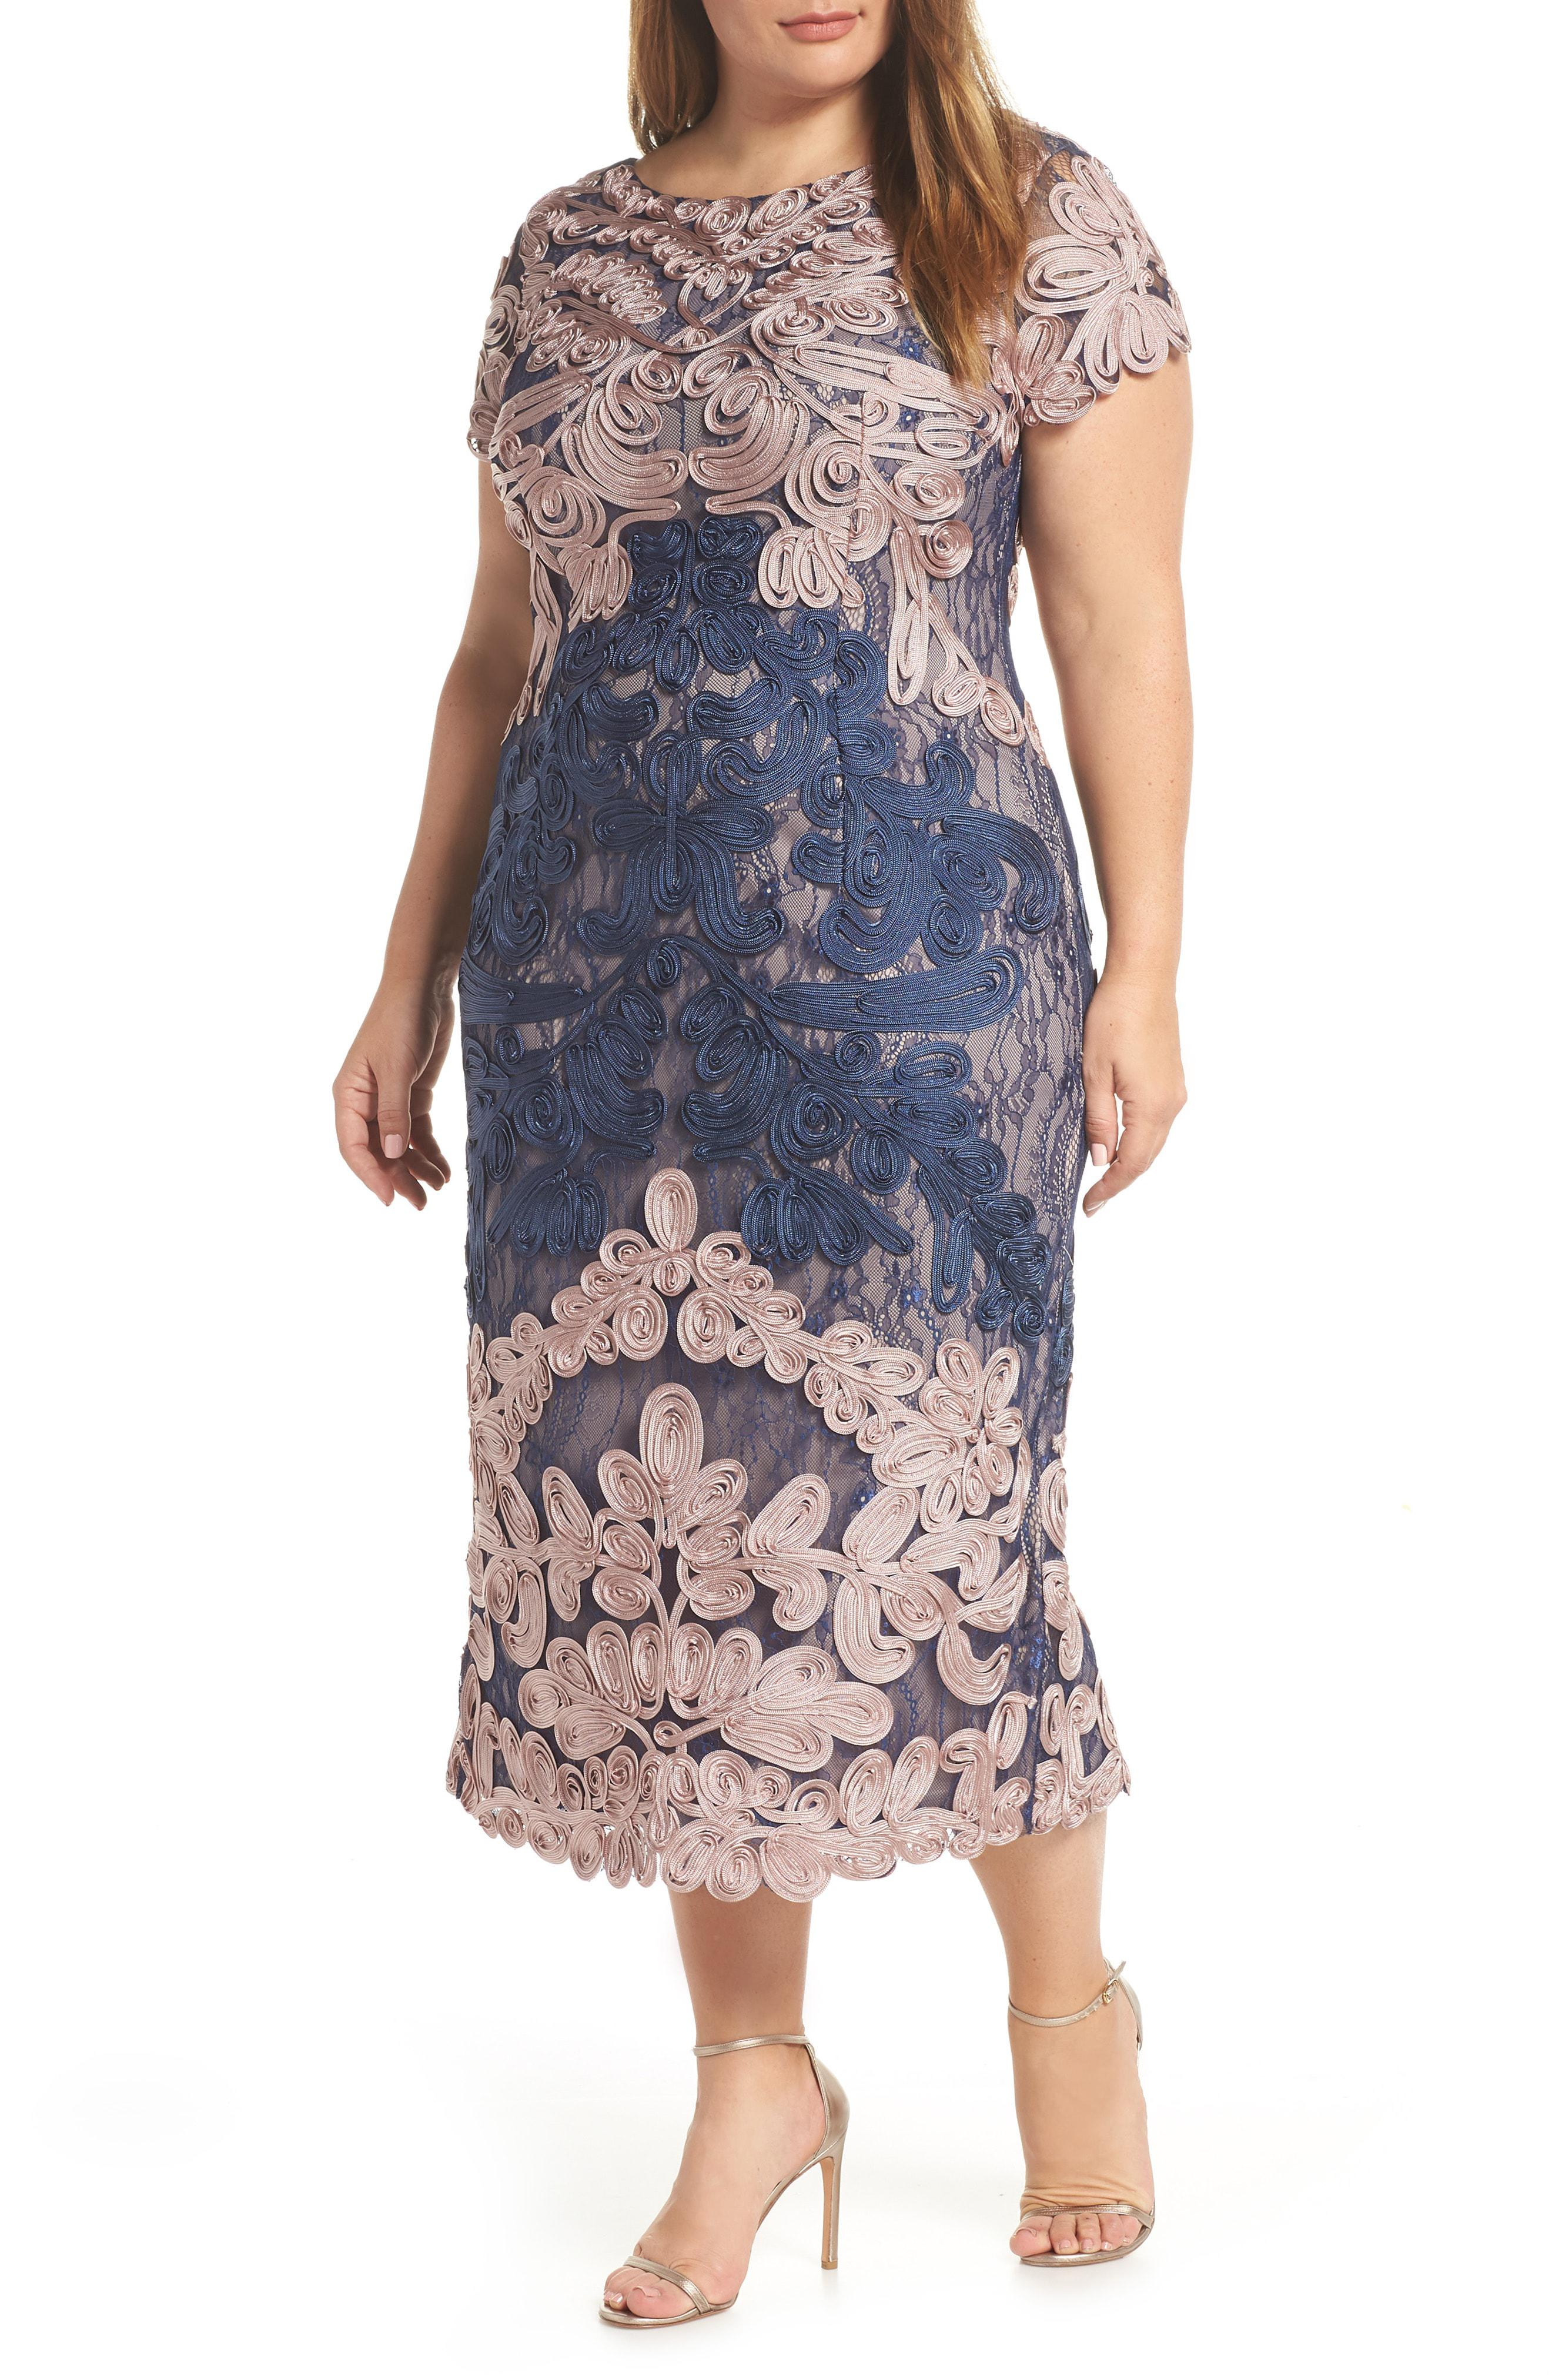 54c7a6cfd40 JS Collections Two Tone Soutache Embroidered Midi Dress in Blue - Lyst